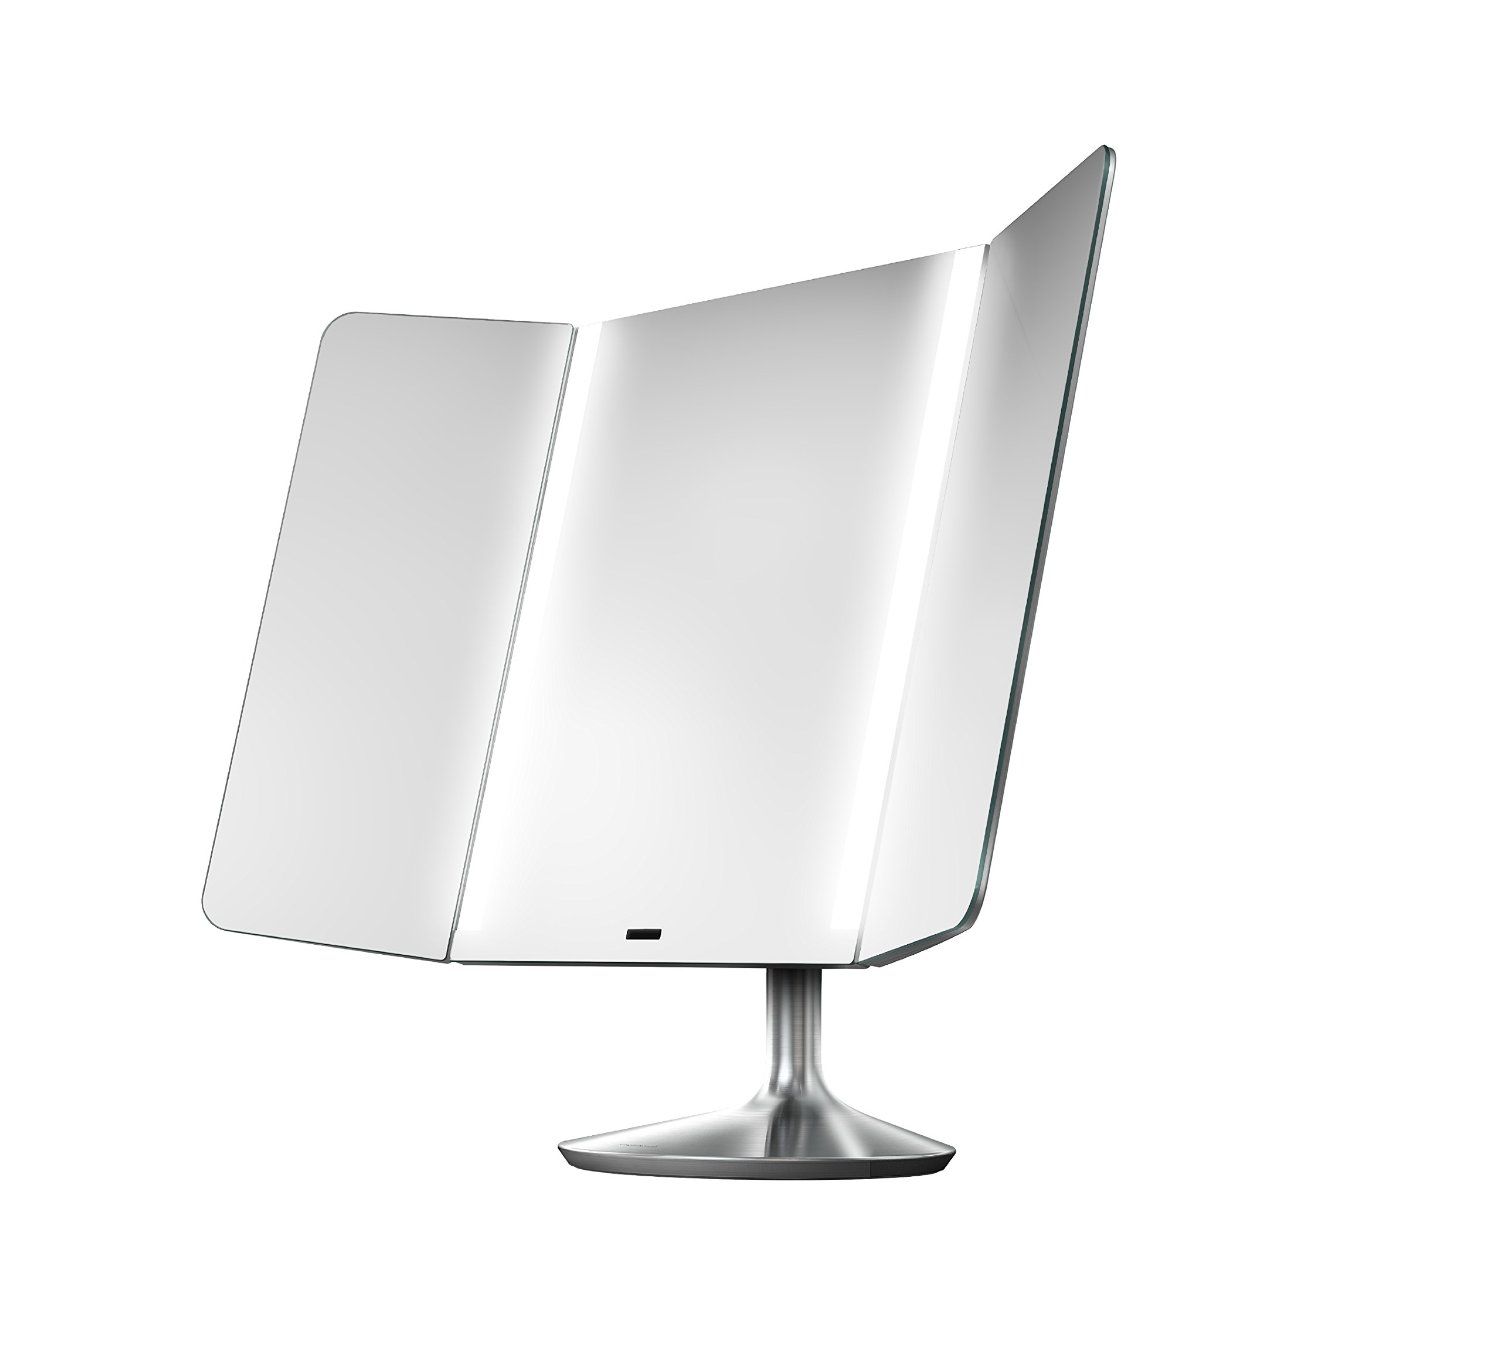 simplehuman wide-view sensor mirror: Amazon.co.uk: Kitchen & Home